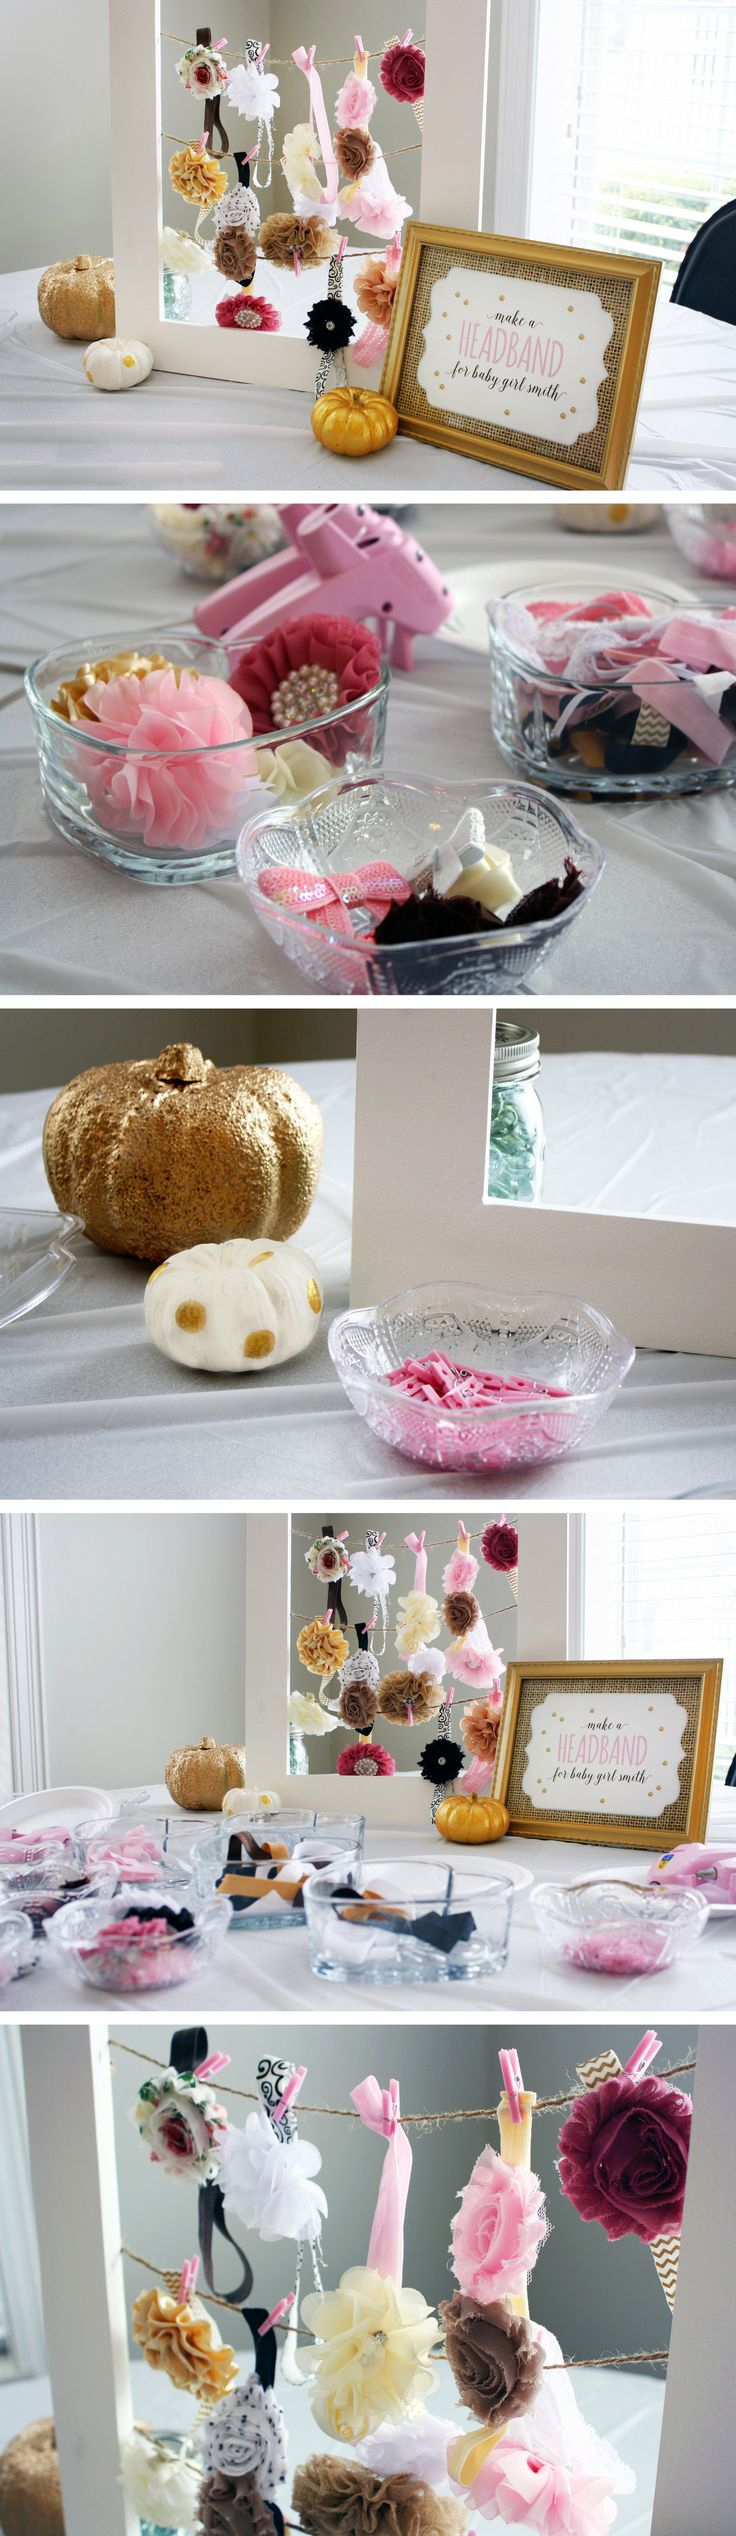 "Modern Glam ""Little Pumpkin"" DIY Headband Making Station"